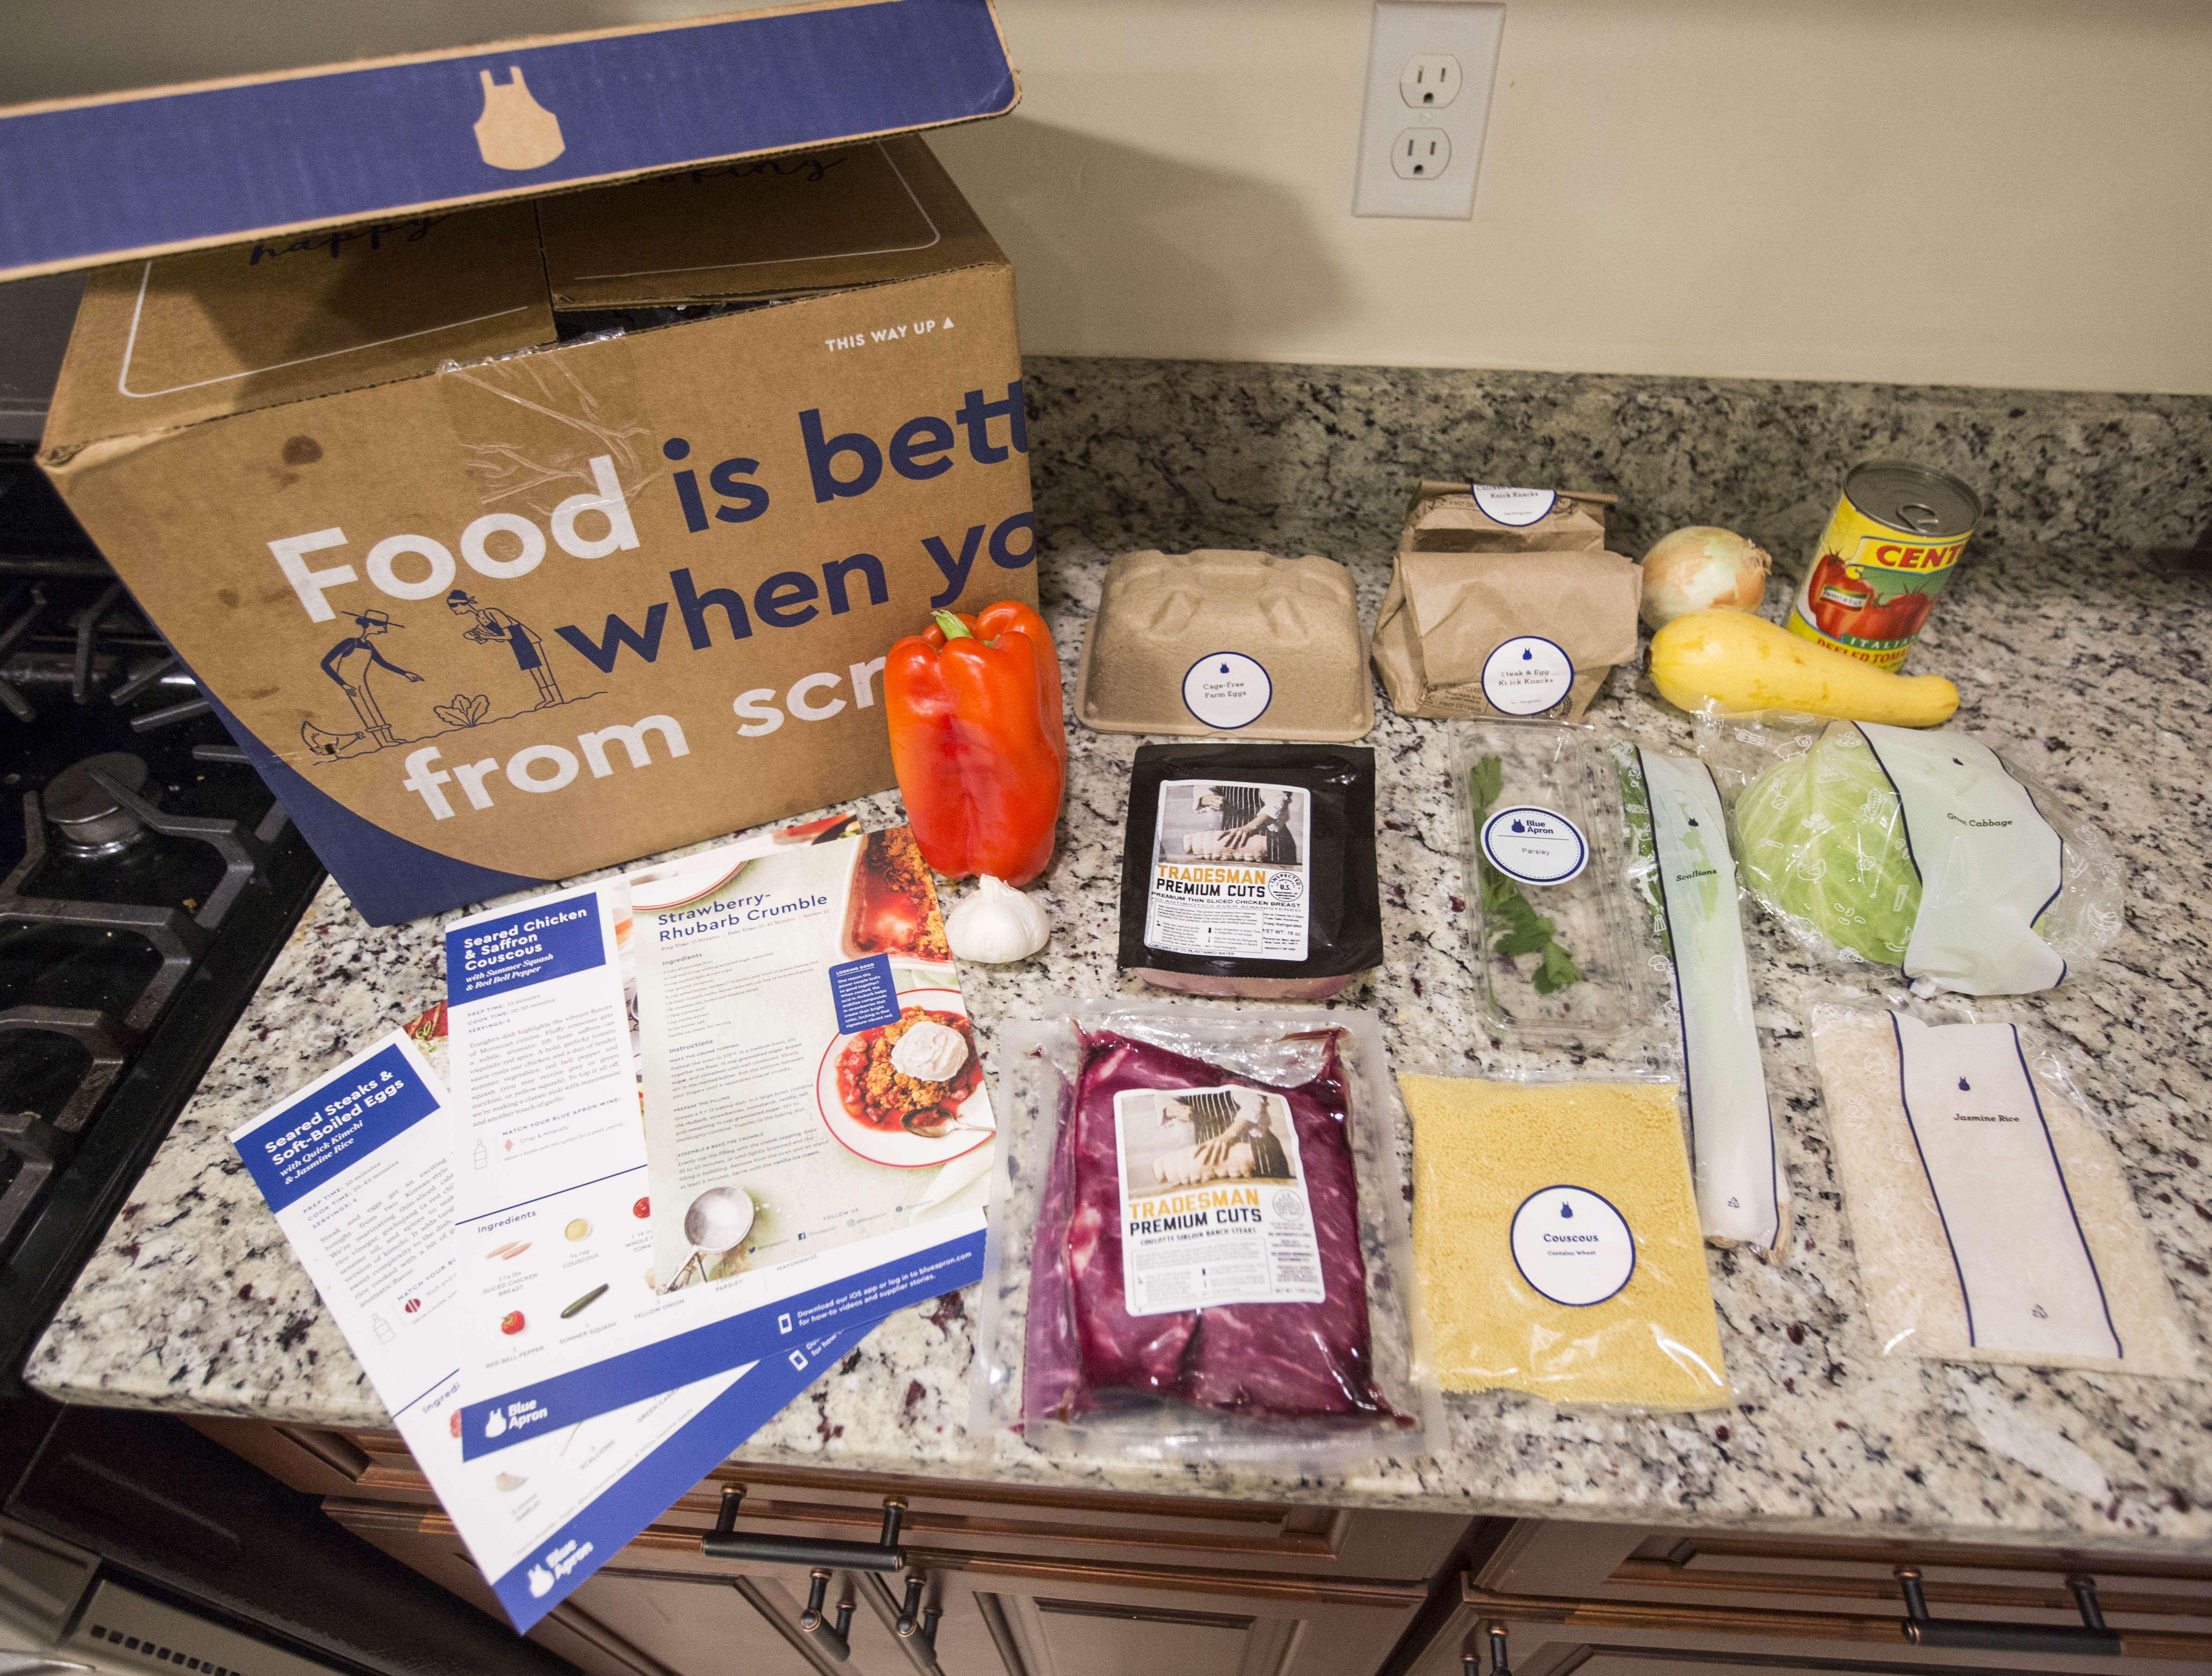 Blue Apron still dominates the market for meal delivery kits